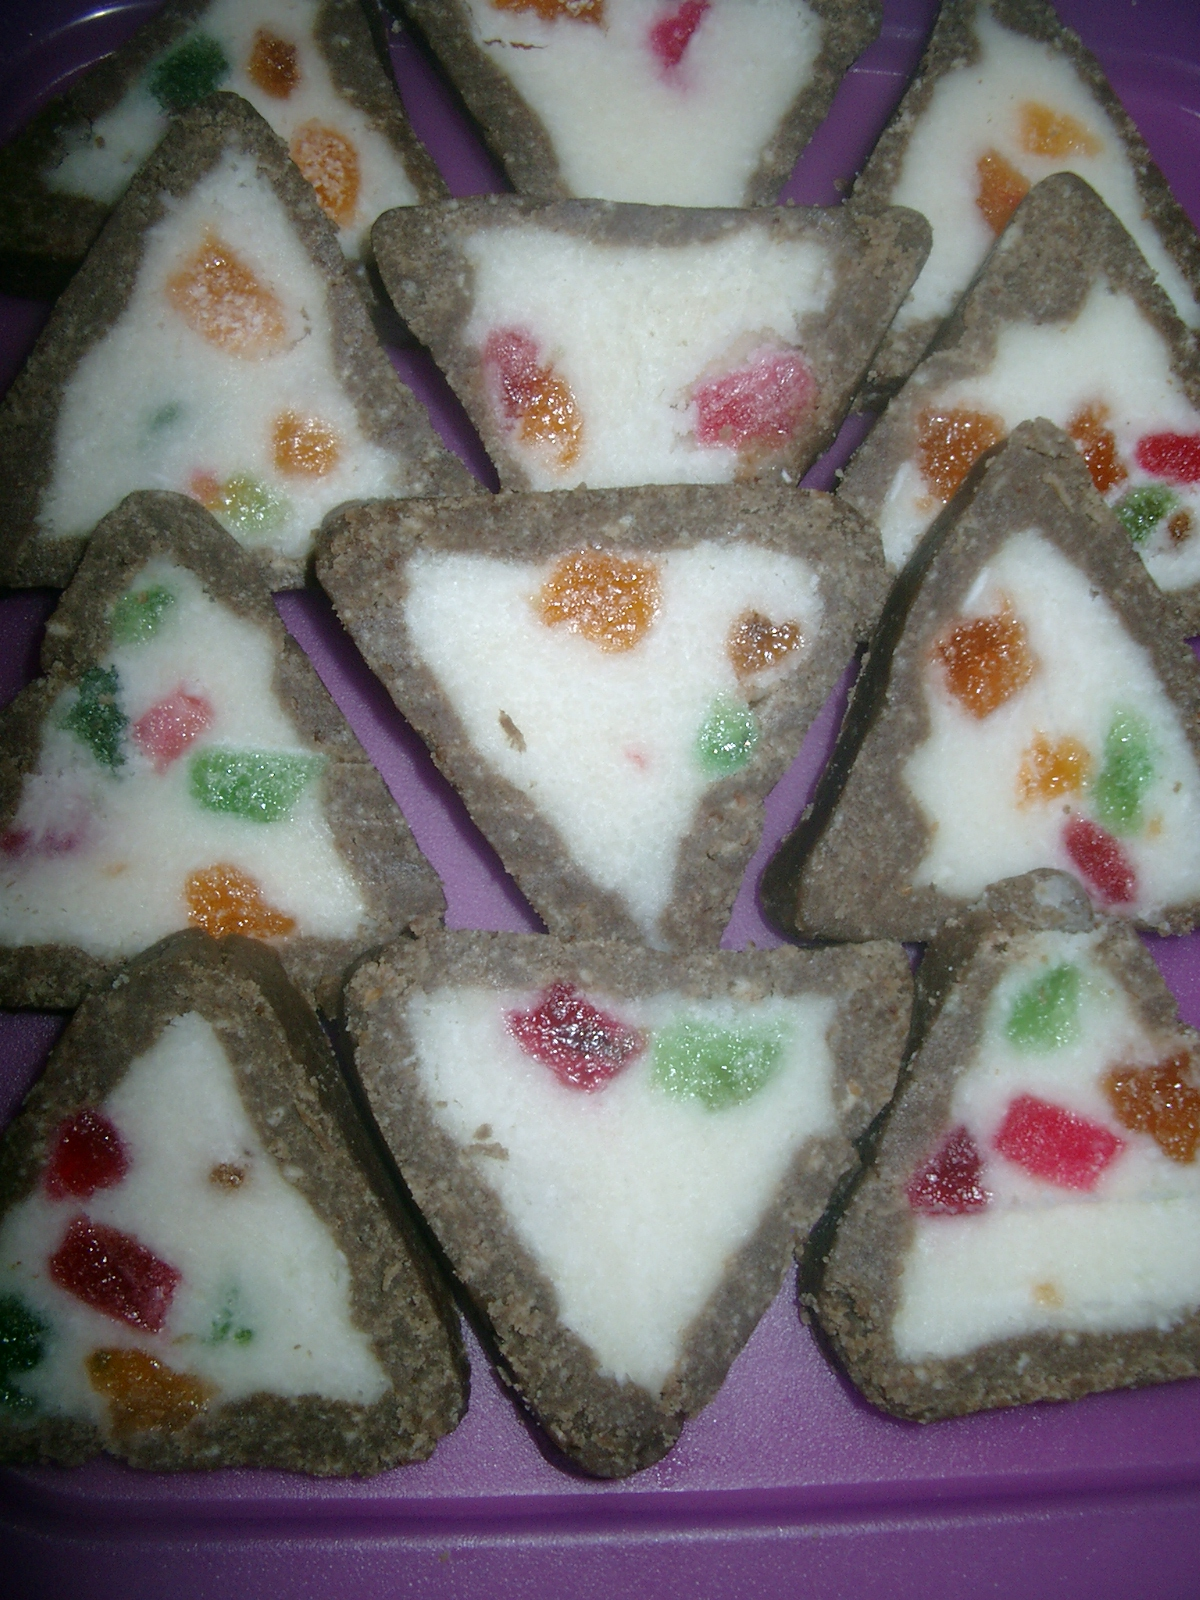 Jelly coconut triangles